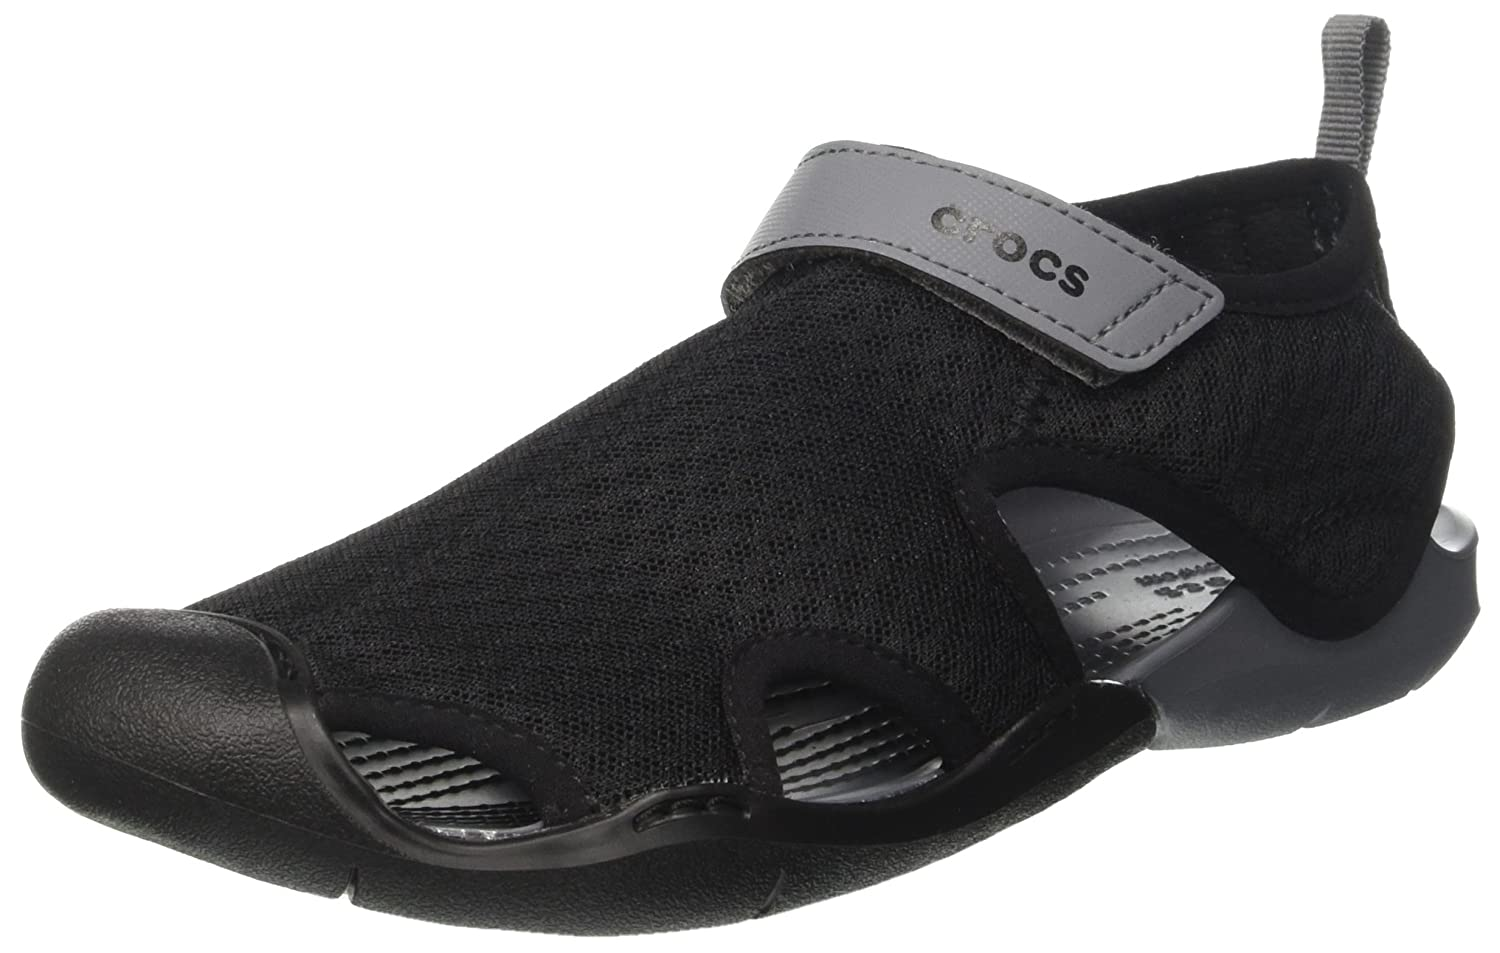 Crocs Women's Swiftwater Mesh Sandal B01H736524 10 B(M) US|Black